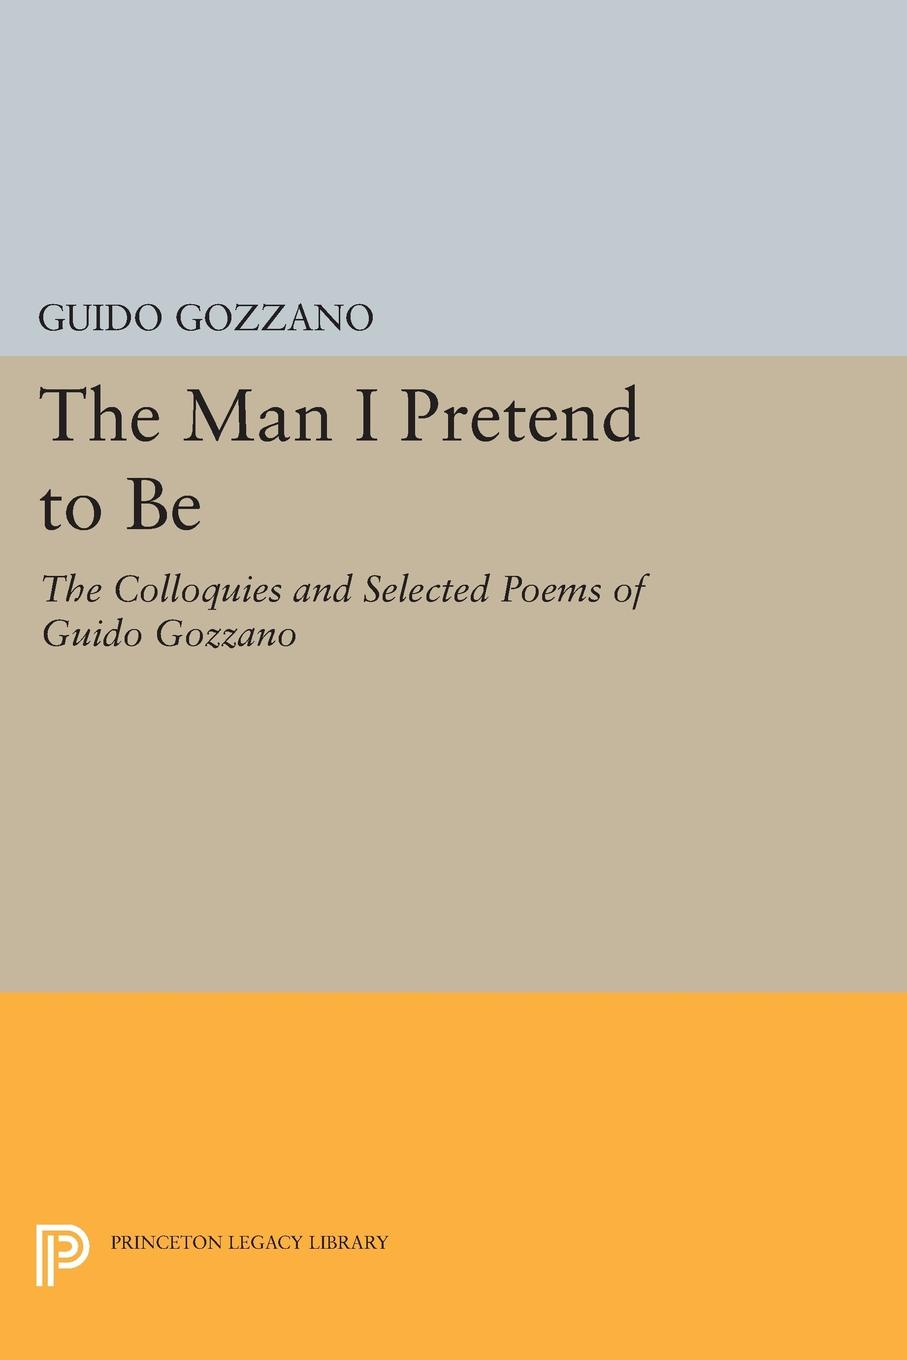 Guido Gozzano, Michael Palma The Man I Pretend to Be. The Colloquies and Selected Poems of Guido Gozzano ajurmotts g zannotti william n joyce fishing derby poems in princeton tufts